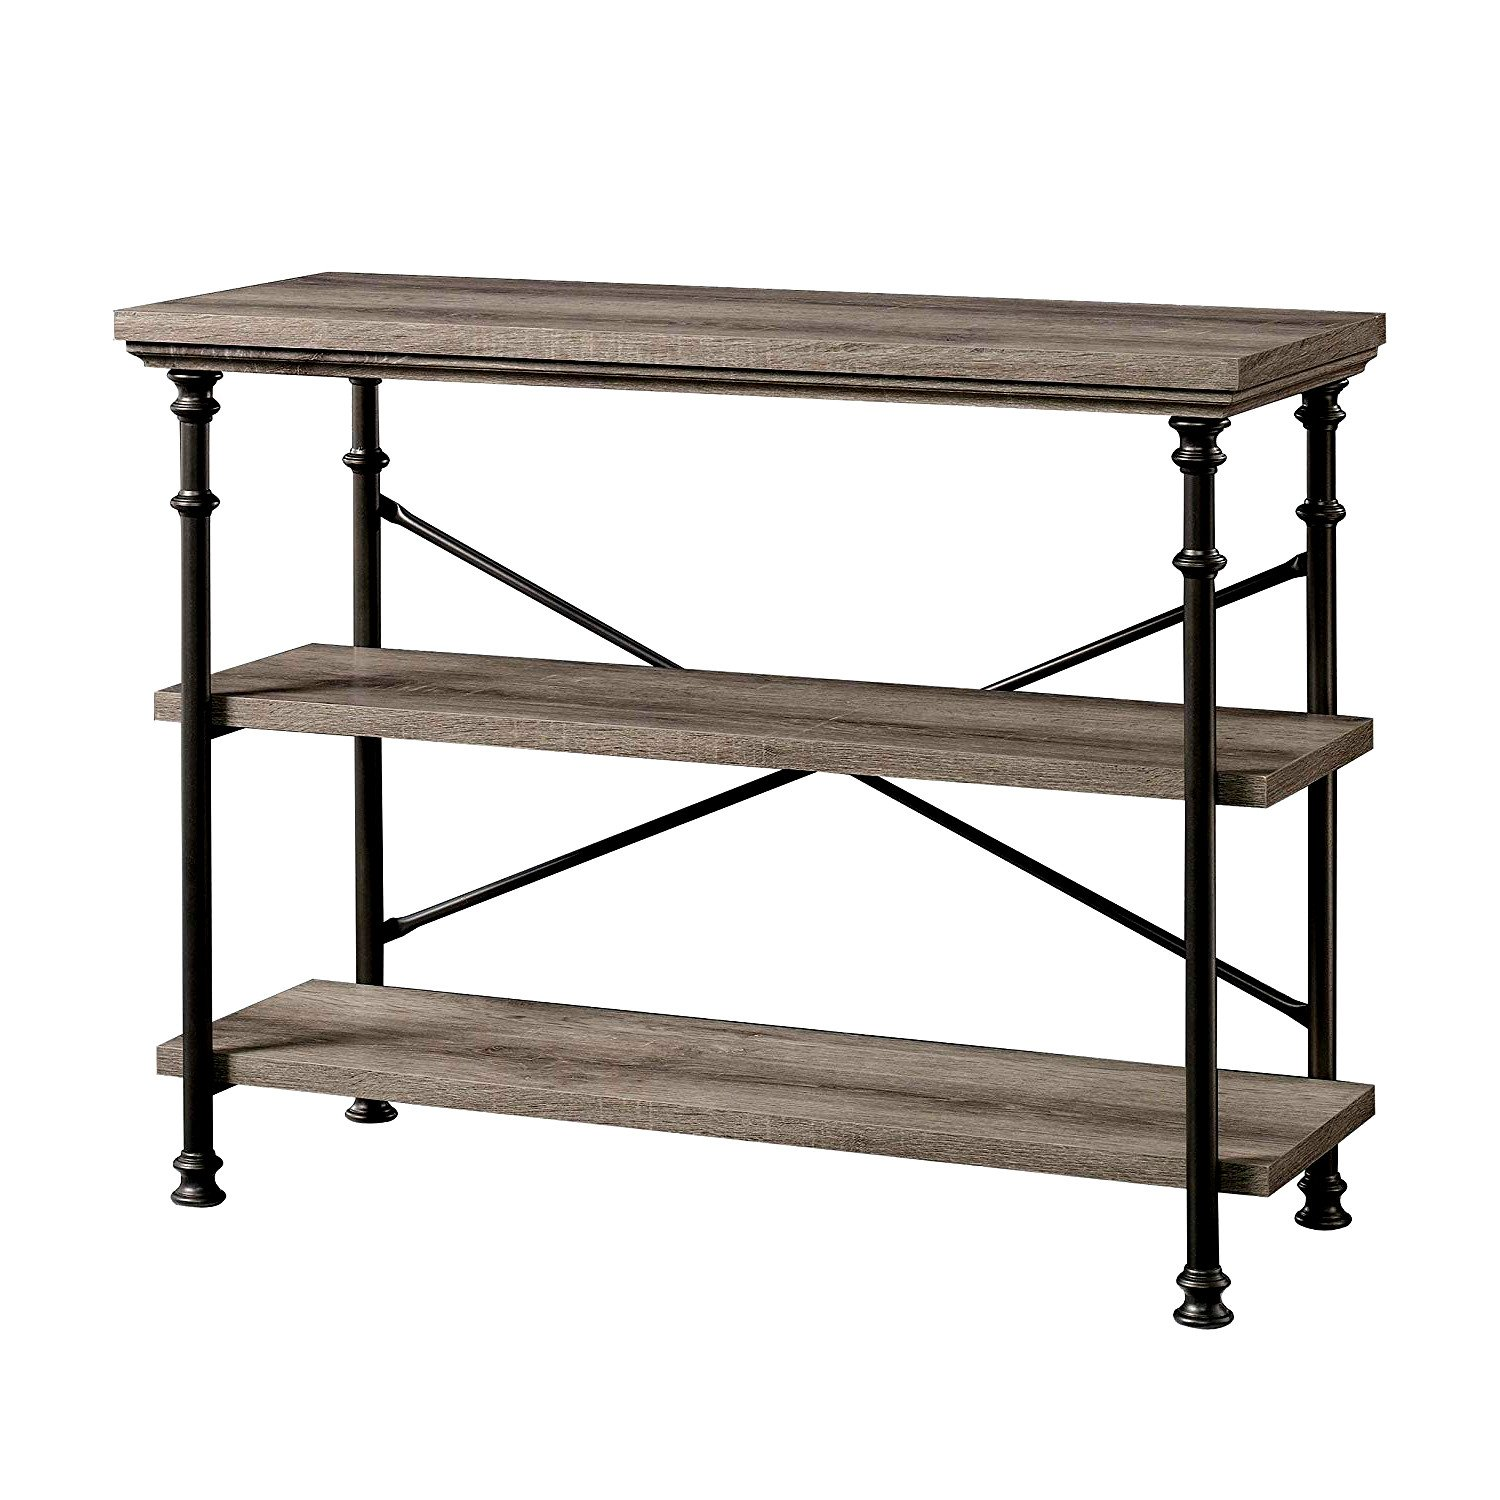 Hallway console table with storage shelves oak grey wood modern sofa table entryway furniture contemporary style 3 tier sofa ample table with metal frame